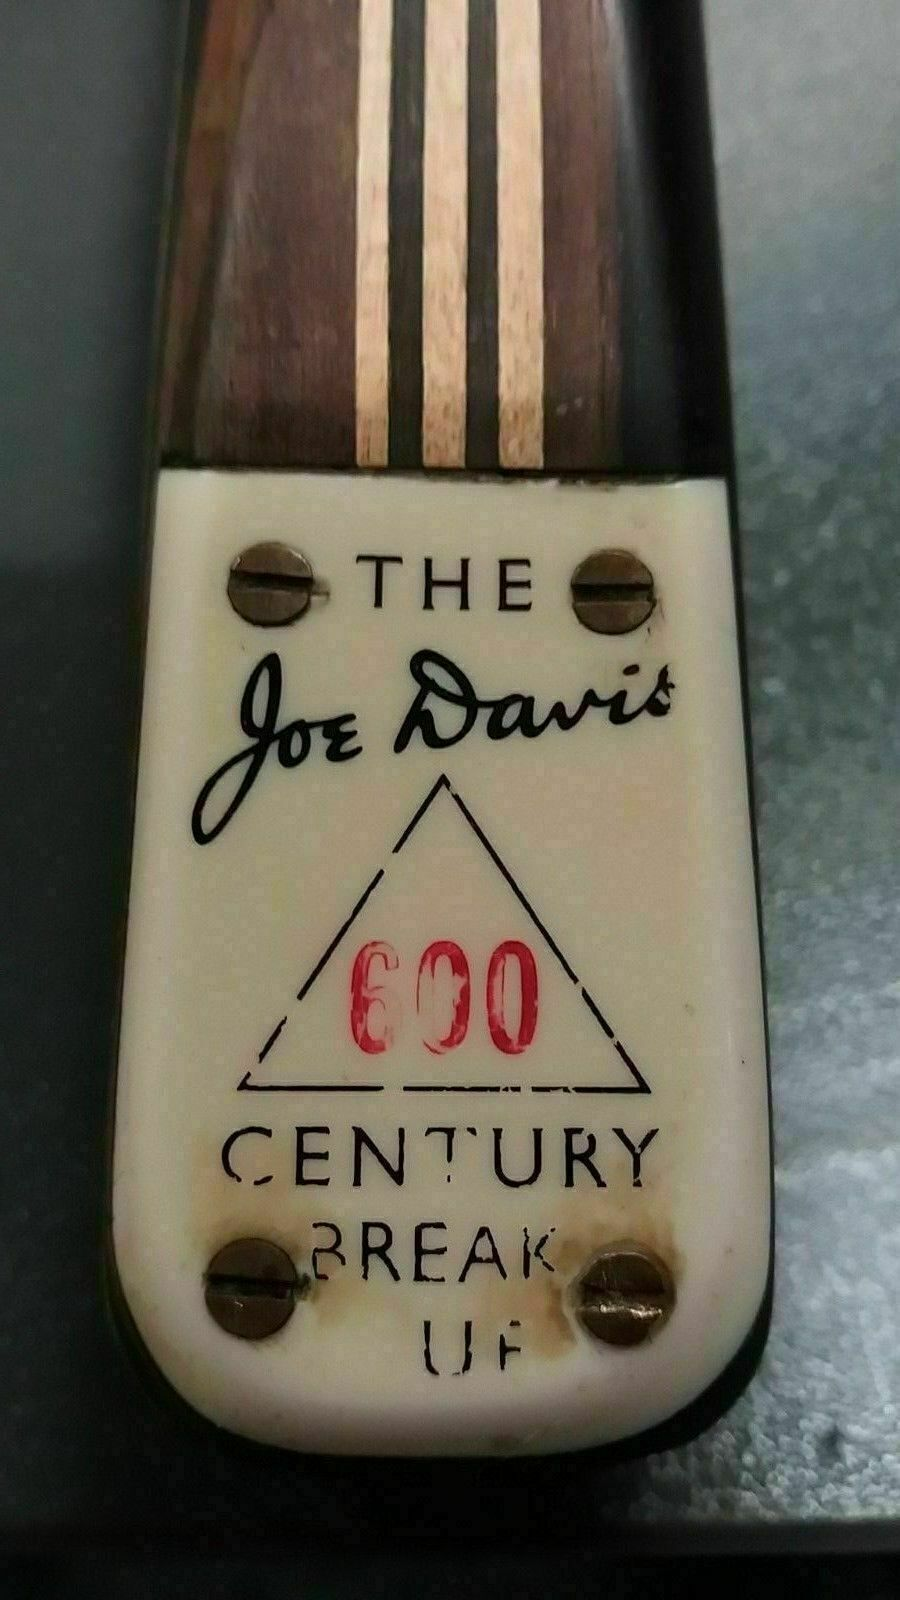 JOE DAVIS (600) CENTURY BREAK SNOOKER CUE 450